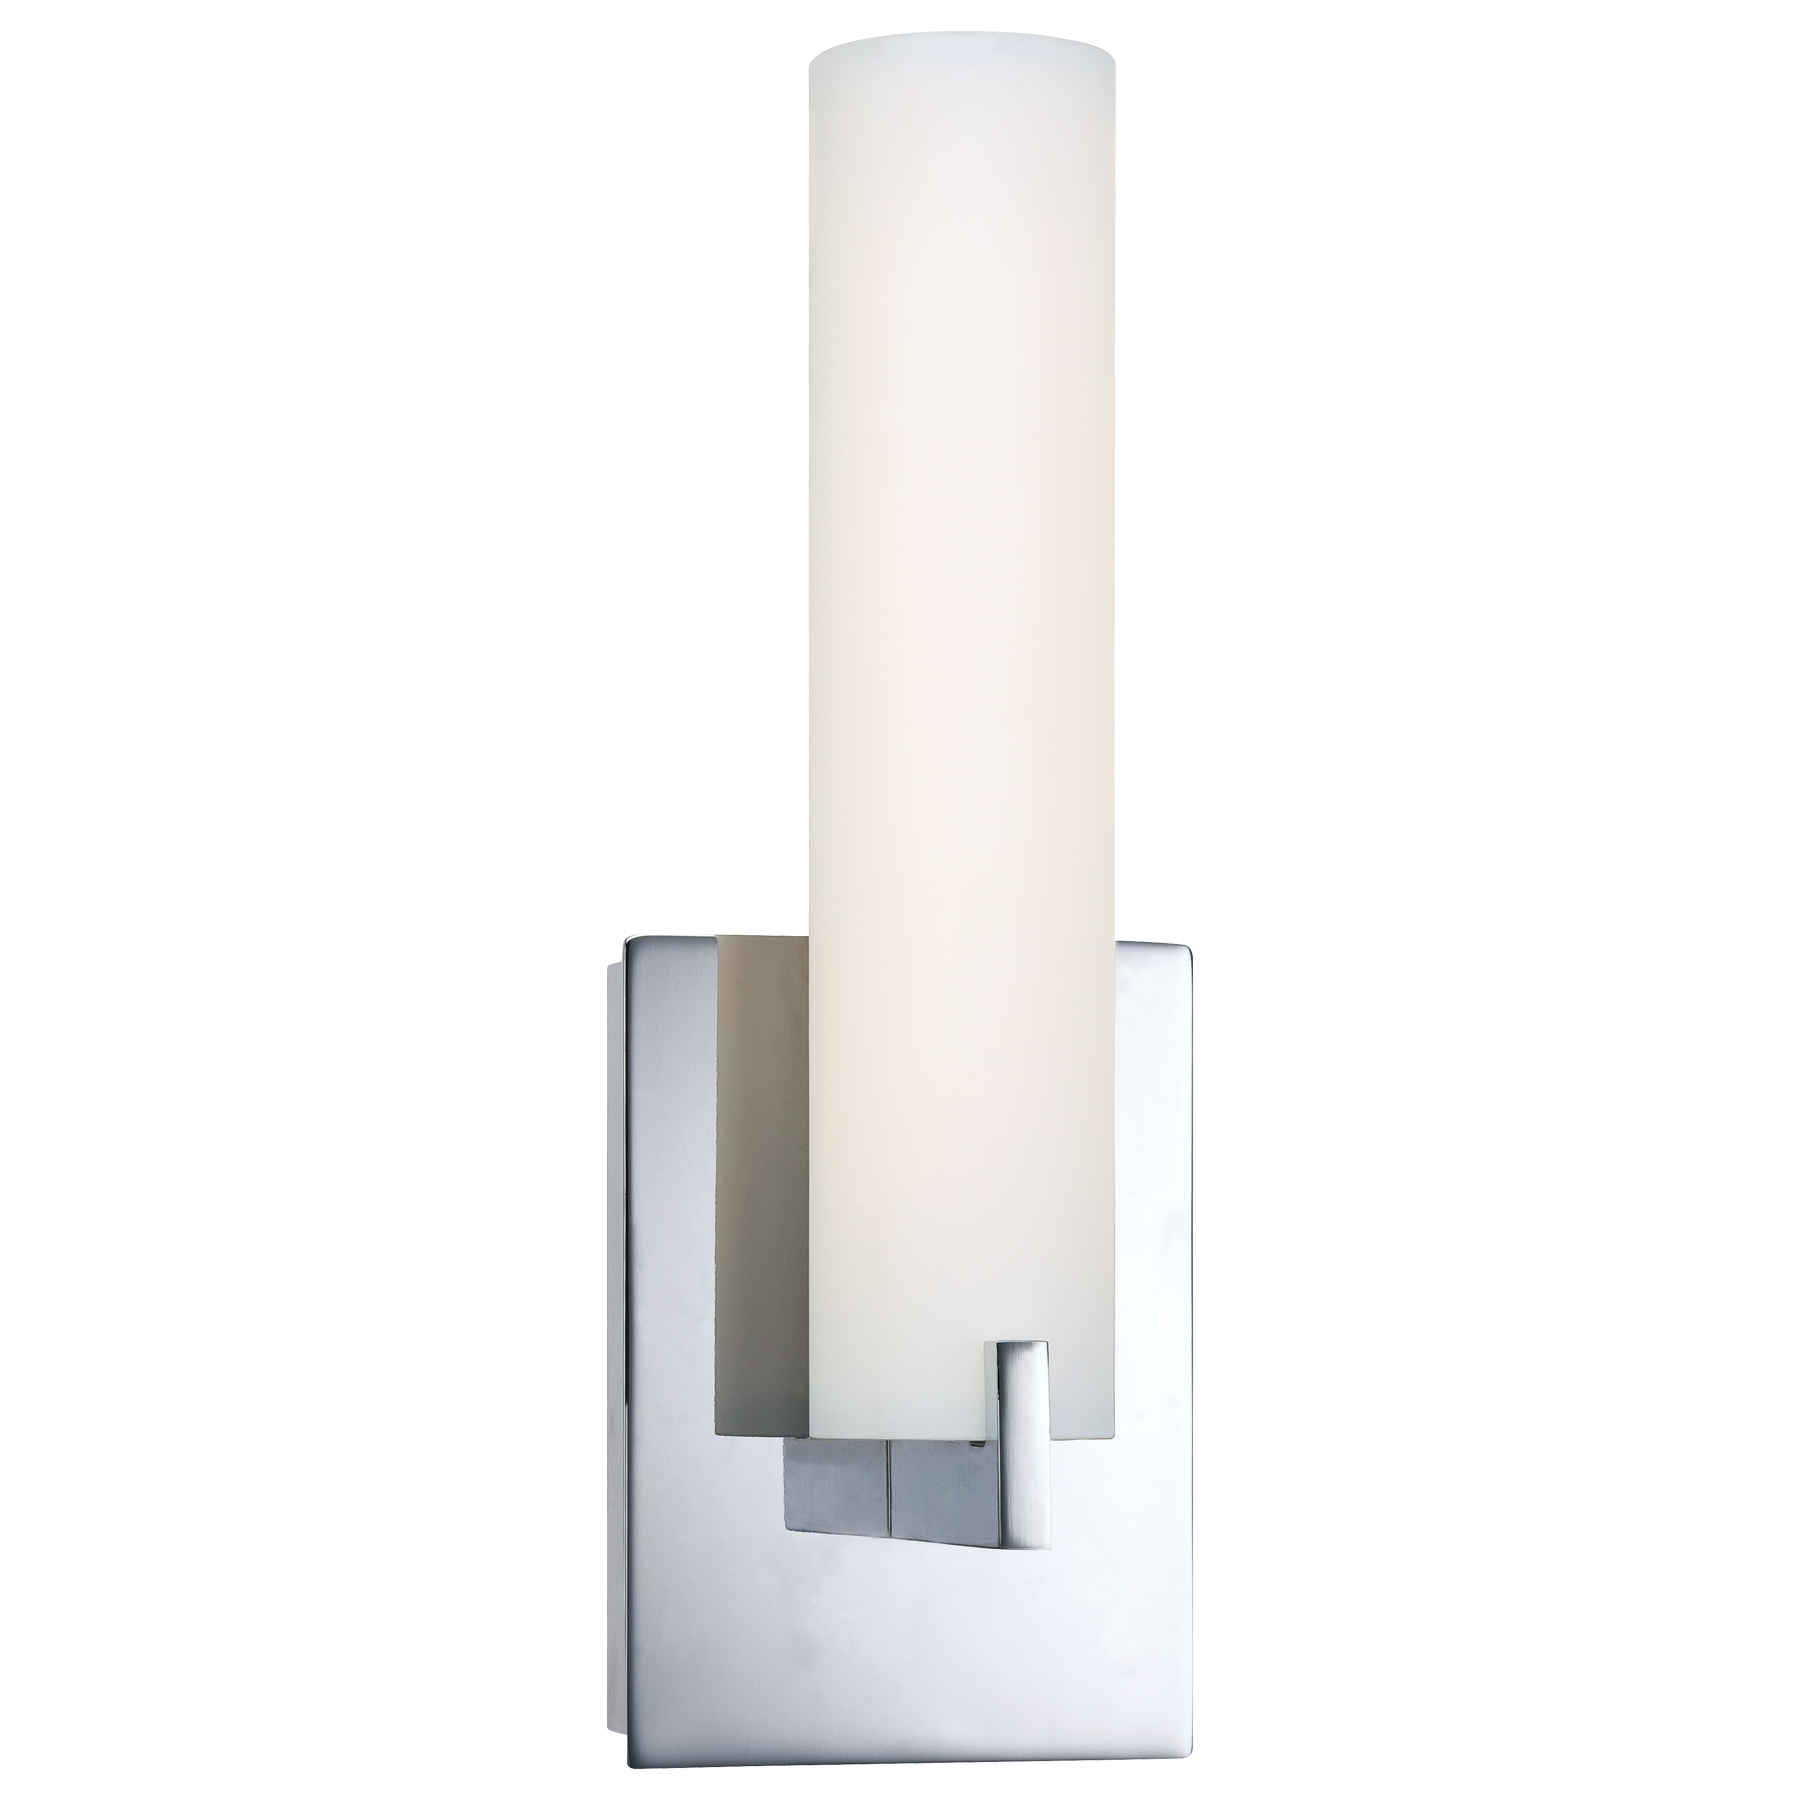 Led vanity wall sconce by george kovacs p5040 077 l tube led vanity wall sconce by george kovacs p5040 077 l amipublicfo Images